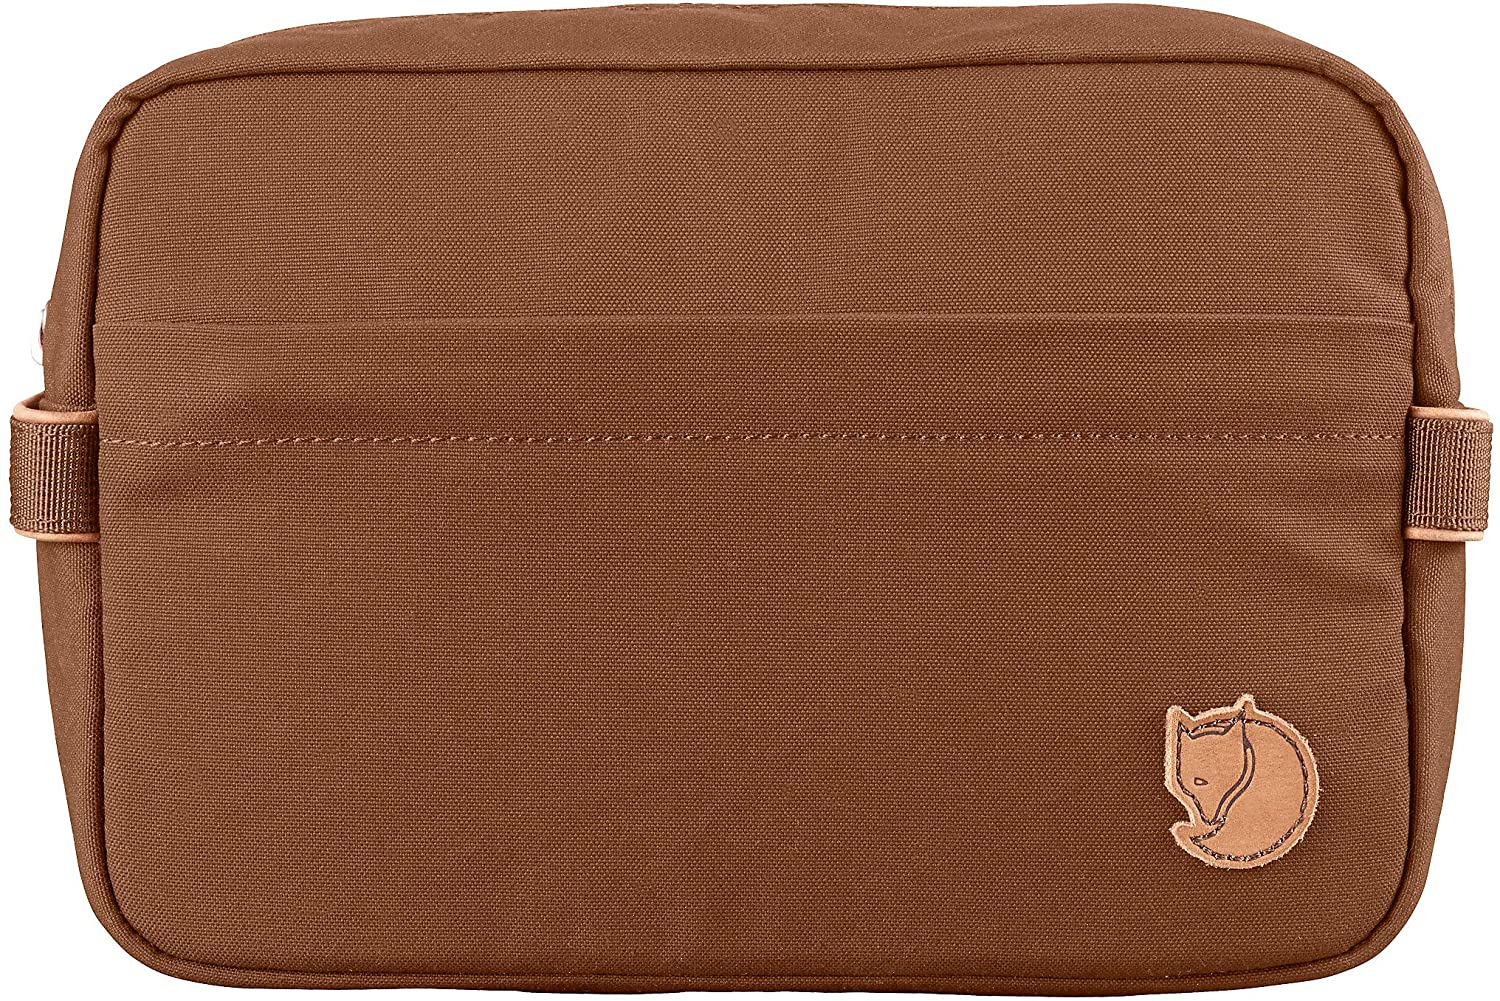 Fjallraven Travel Toiletry Bag Chestnut